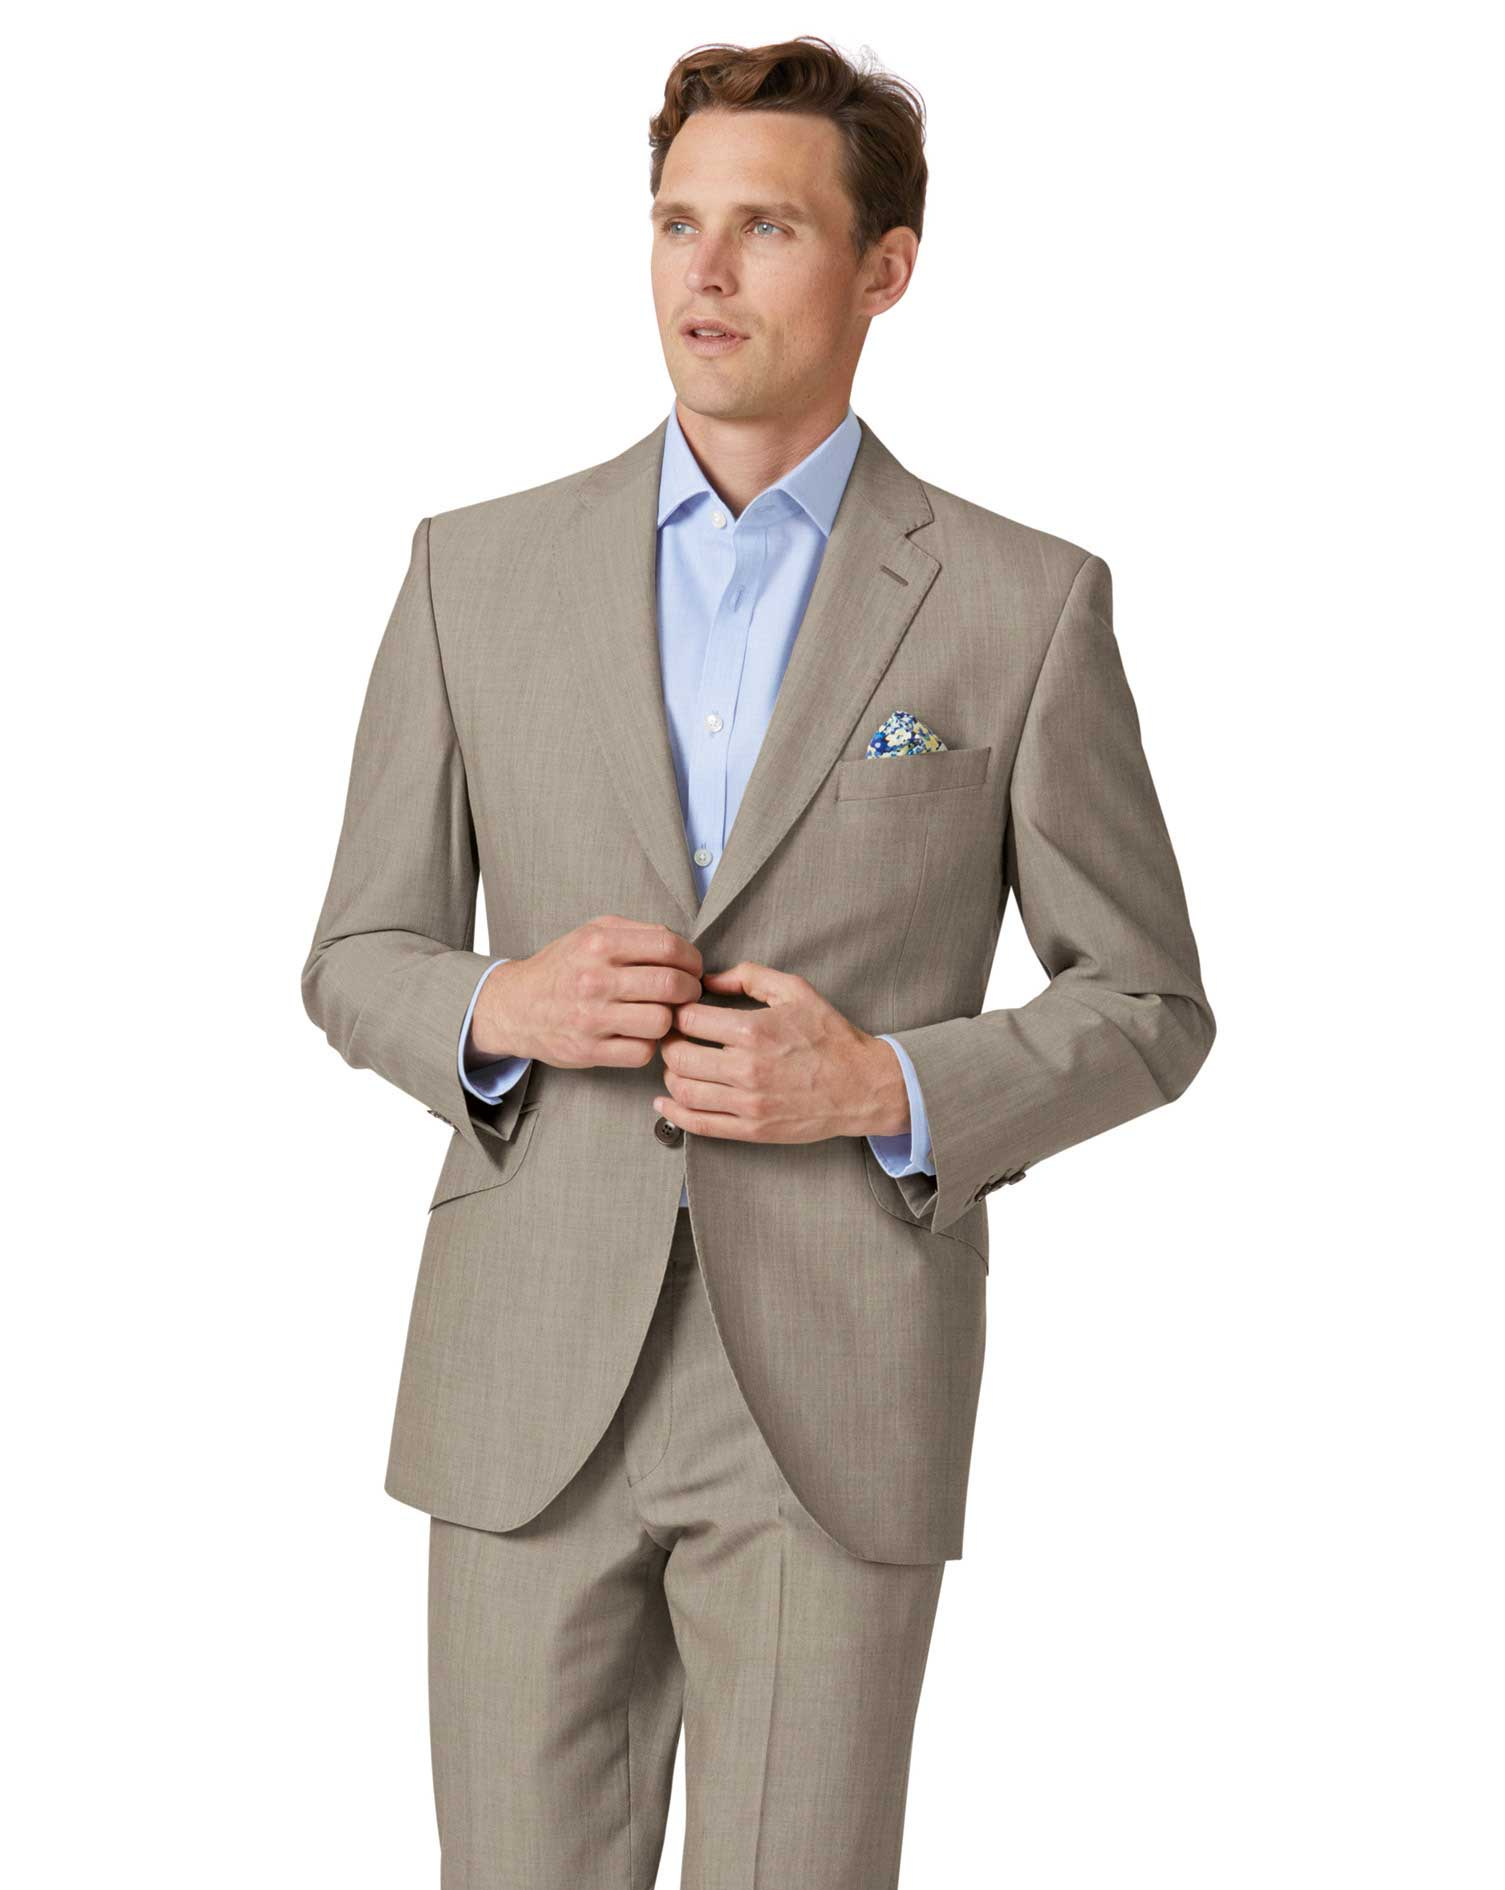 Natural Panama Classic Fit British Suit Wool Jacket Size 40 Short by Charles Tyrwhitt